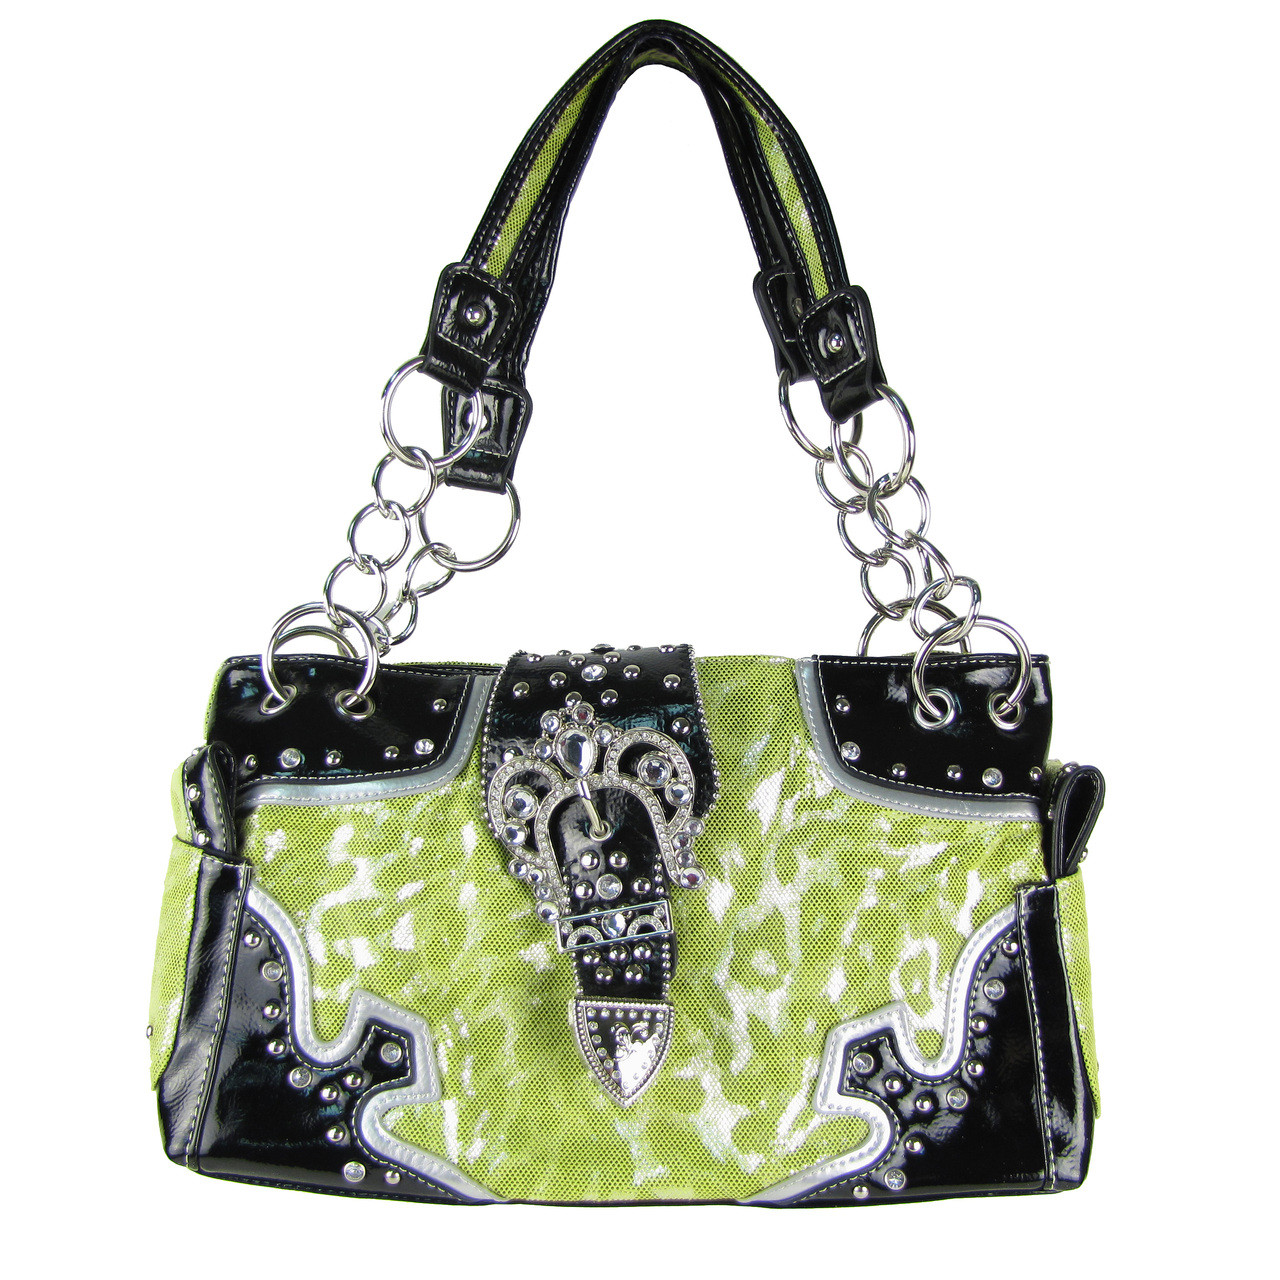 GREEN LEAPORD RHINESTONE BUCKLE SHOULDER HANDBAG HB1-BHW14GRN